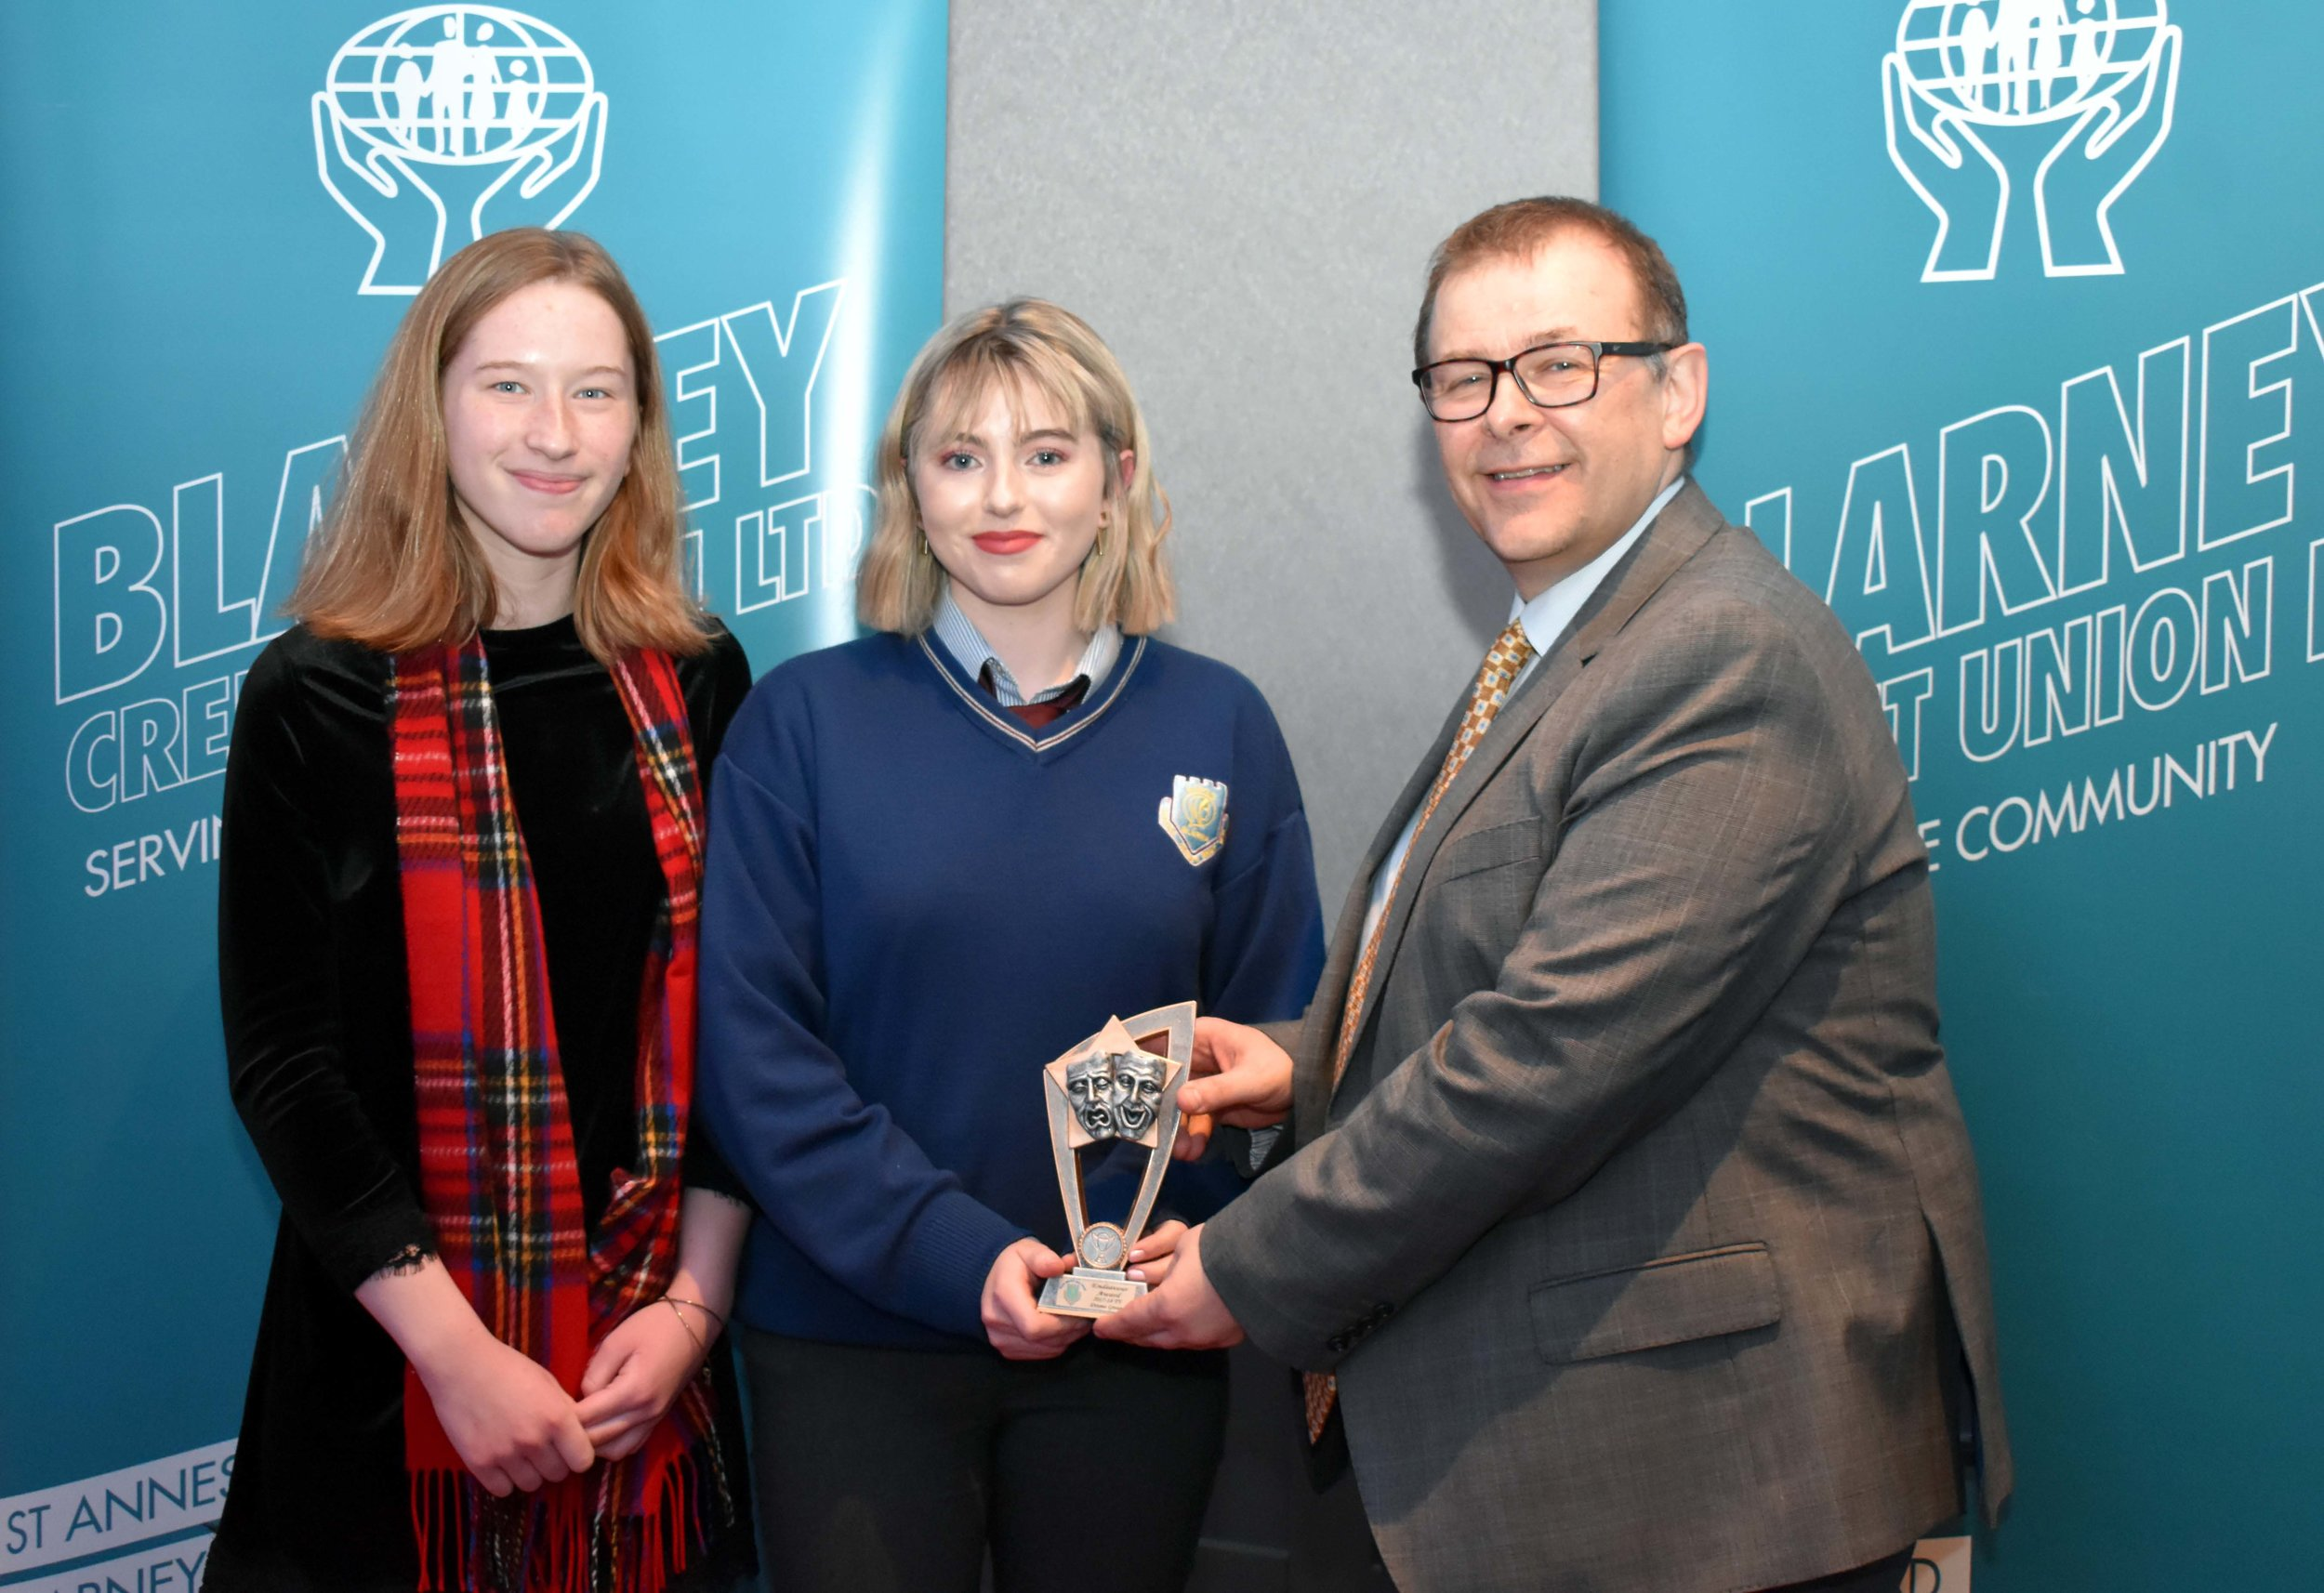 TY Drama Group 2017/18 receiving an endeavour award for reaching the Runner Up place in the All Ireland Final in Mullingar with their play written by Anna O' Connor and Abby Leahy, seen here accepting the award on behalf of the group. (Pictured with Mr. Mark McGloughlin - BOM and Blarney Credit Union)